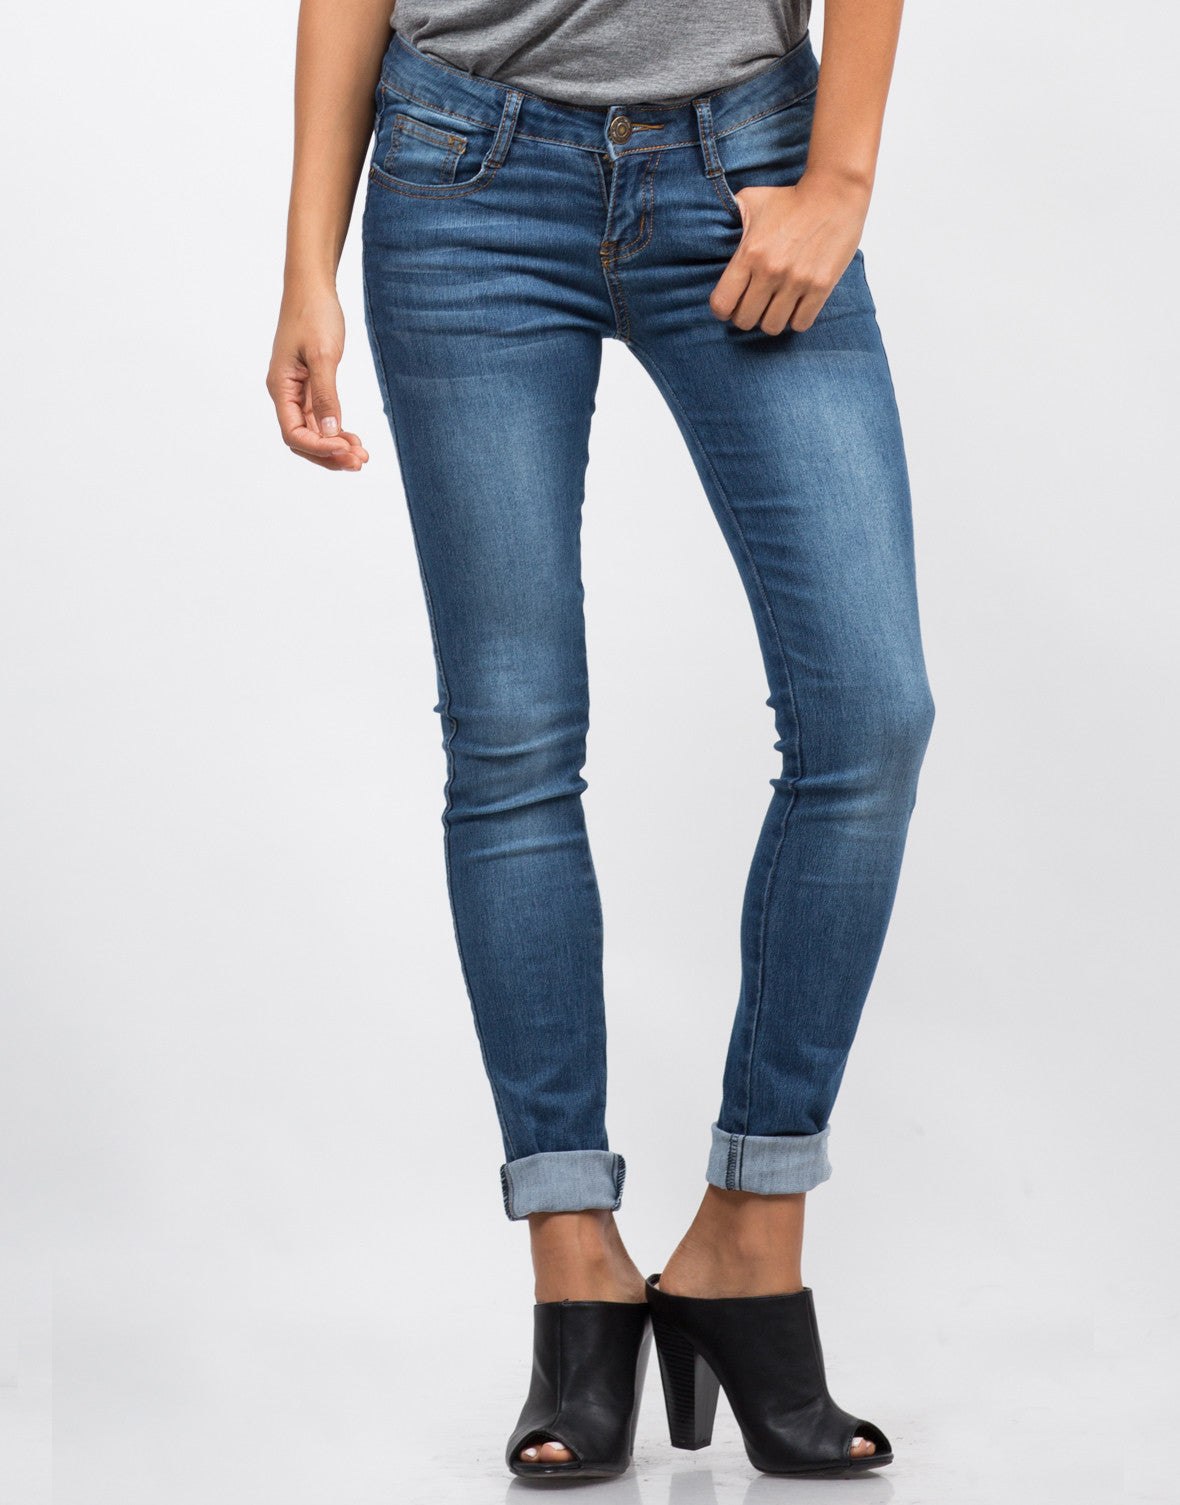 Front View of Classic Blue Skinny Jeans